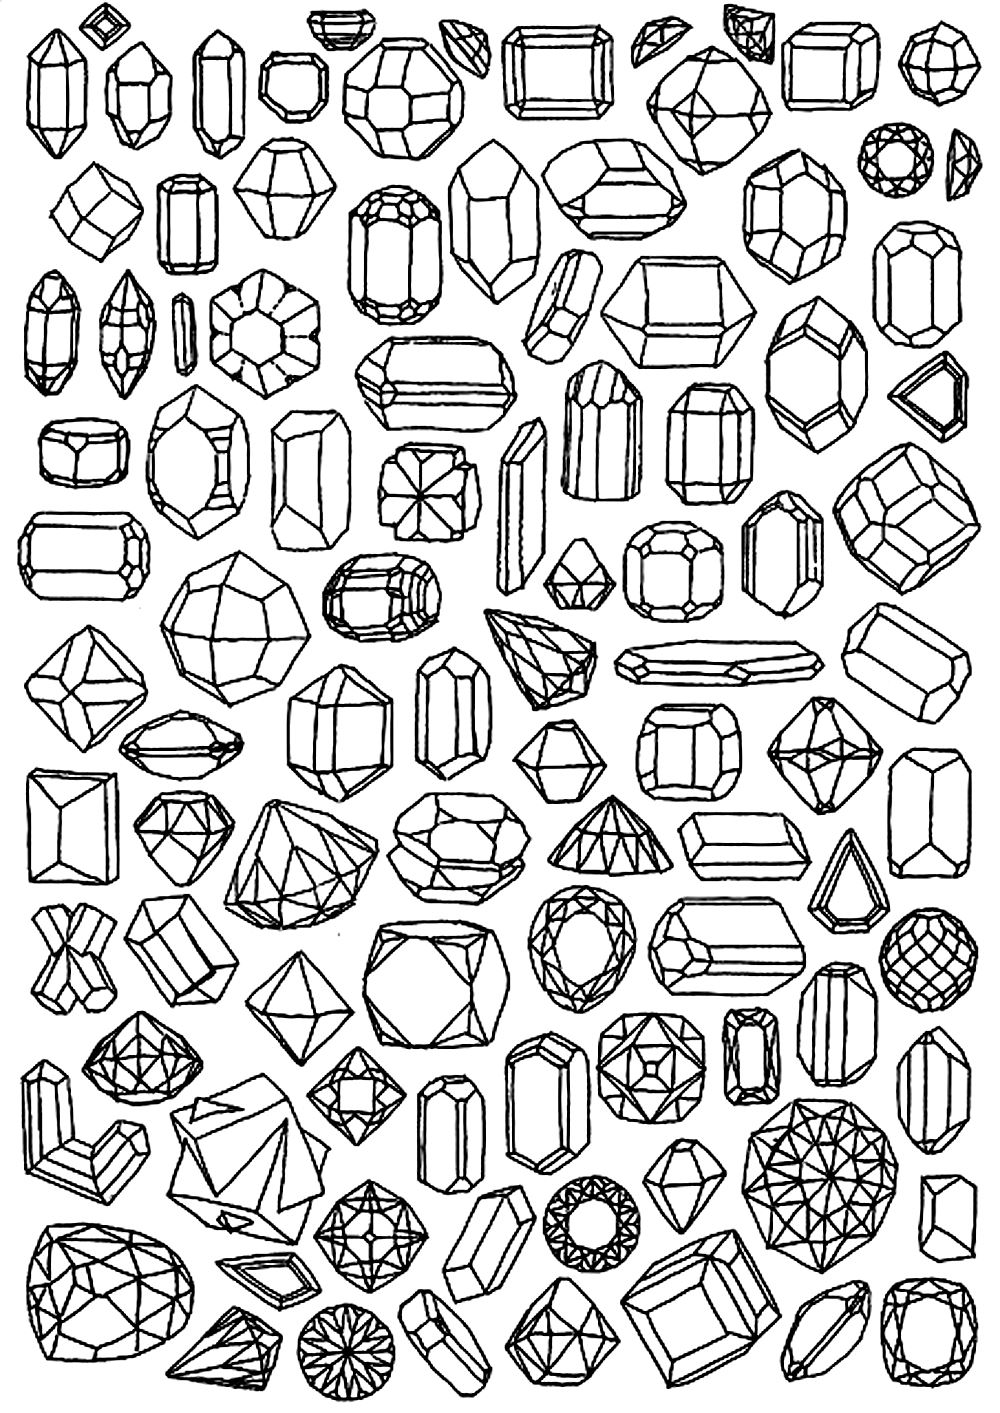 Diamond - Coloring Pages for Adults